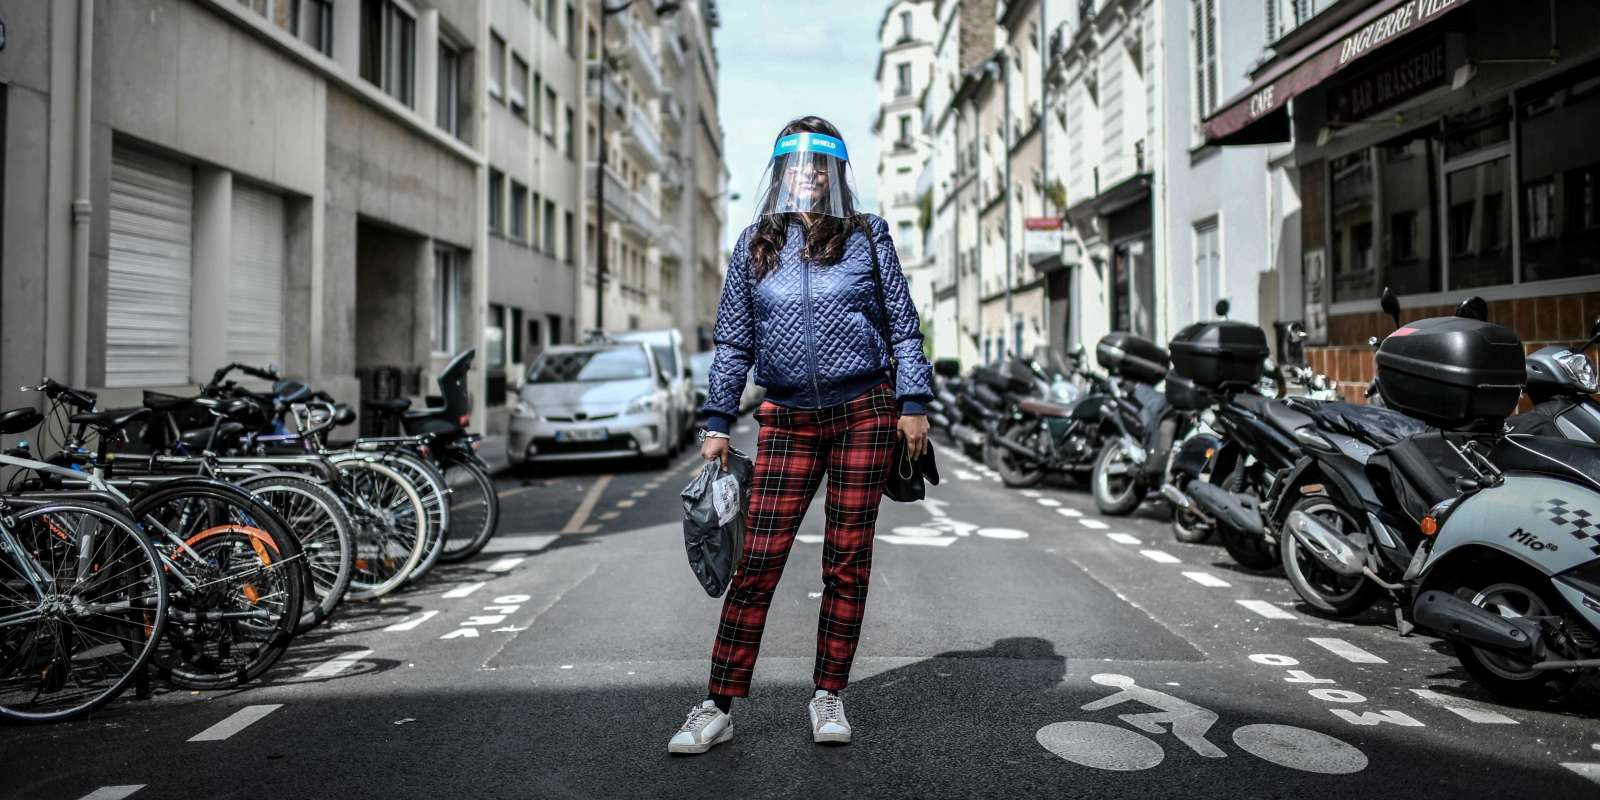 A woman, wearing a protective face shield, poses for a photograph in the streets of Paris on May 4, 2020, on the 49th day of a strict lockdown in France to stop the spread of COVID-19 (novel coronavirus). The French government is also facing fresh criticism over its policies on face masks, which officially went on sale to the public May 4, 2020-- even though people across France have managed to procure them despite the requisition of all stocks and production since March. / AFP / STEPHANE DE SAKUTIN